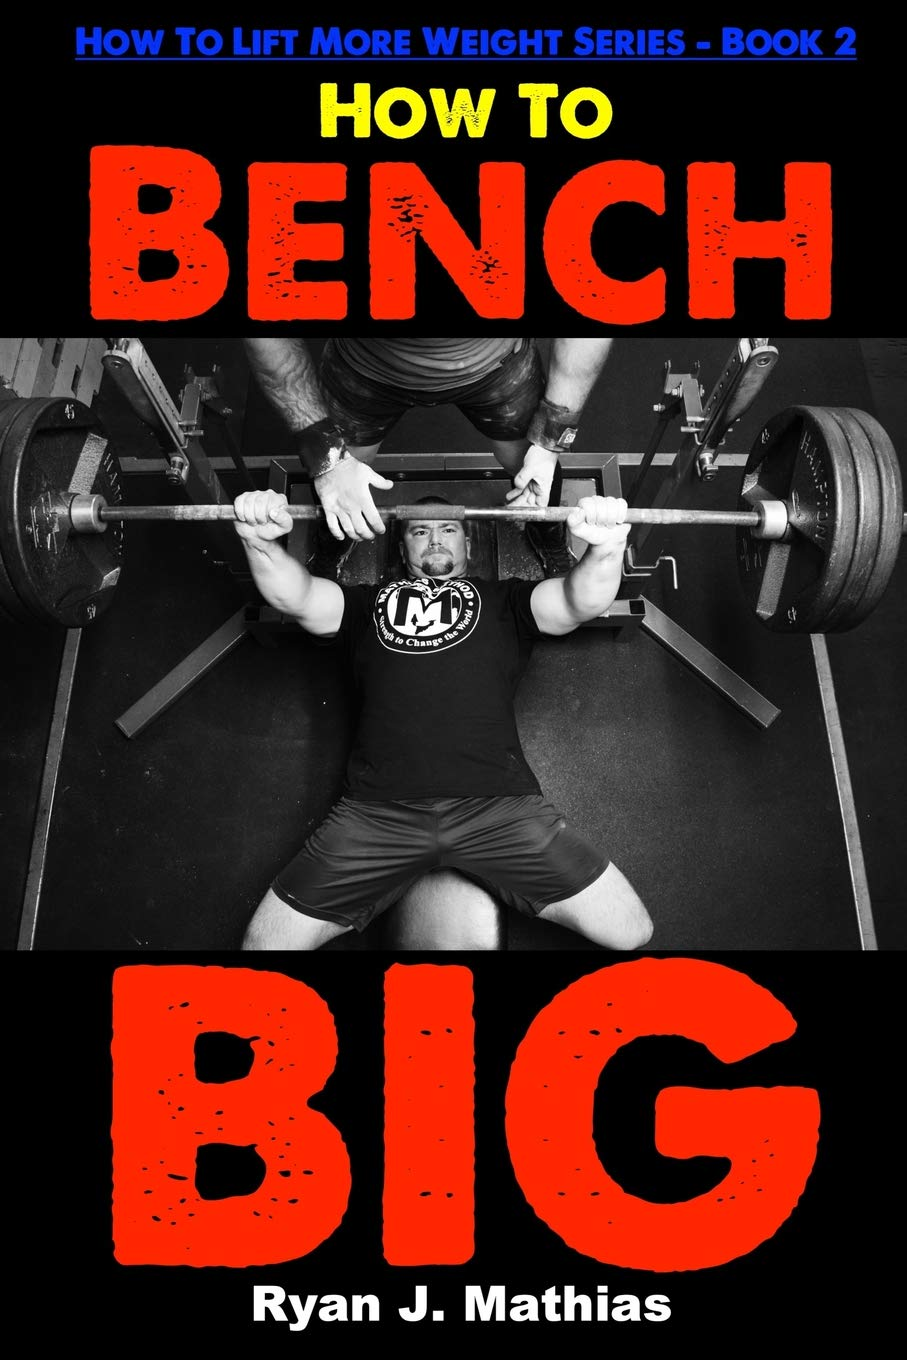 How To Bench Big 12 Week Bench Press Program And Technique Guide